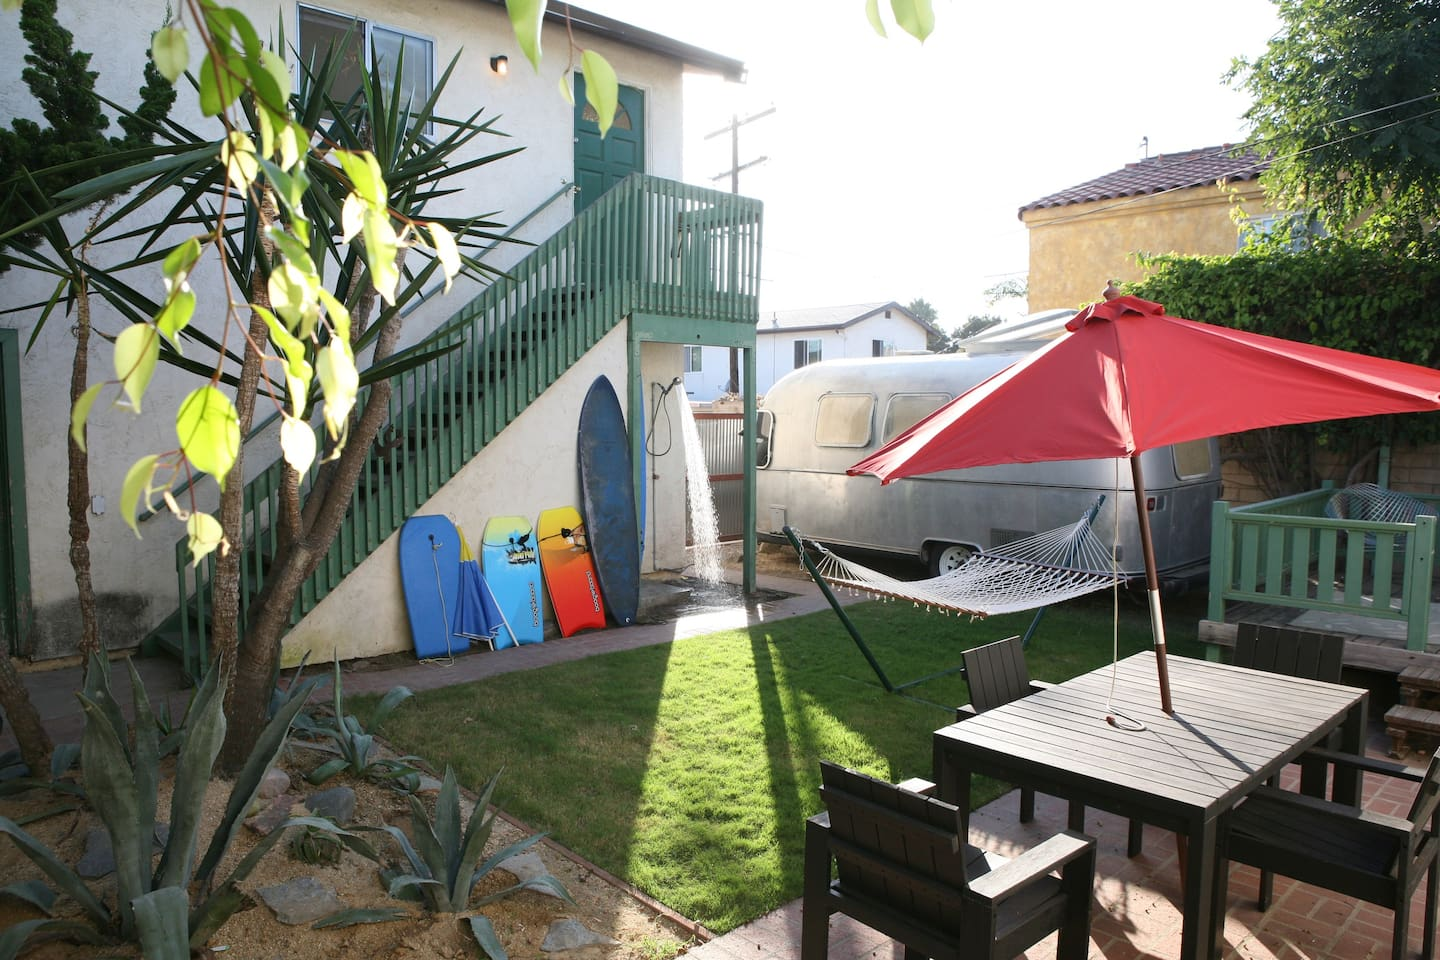 back yard with bbq, outdoor shower, airstream, shared beach toys&bikes- secured garage parking- unit is UPSTAIRS